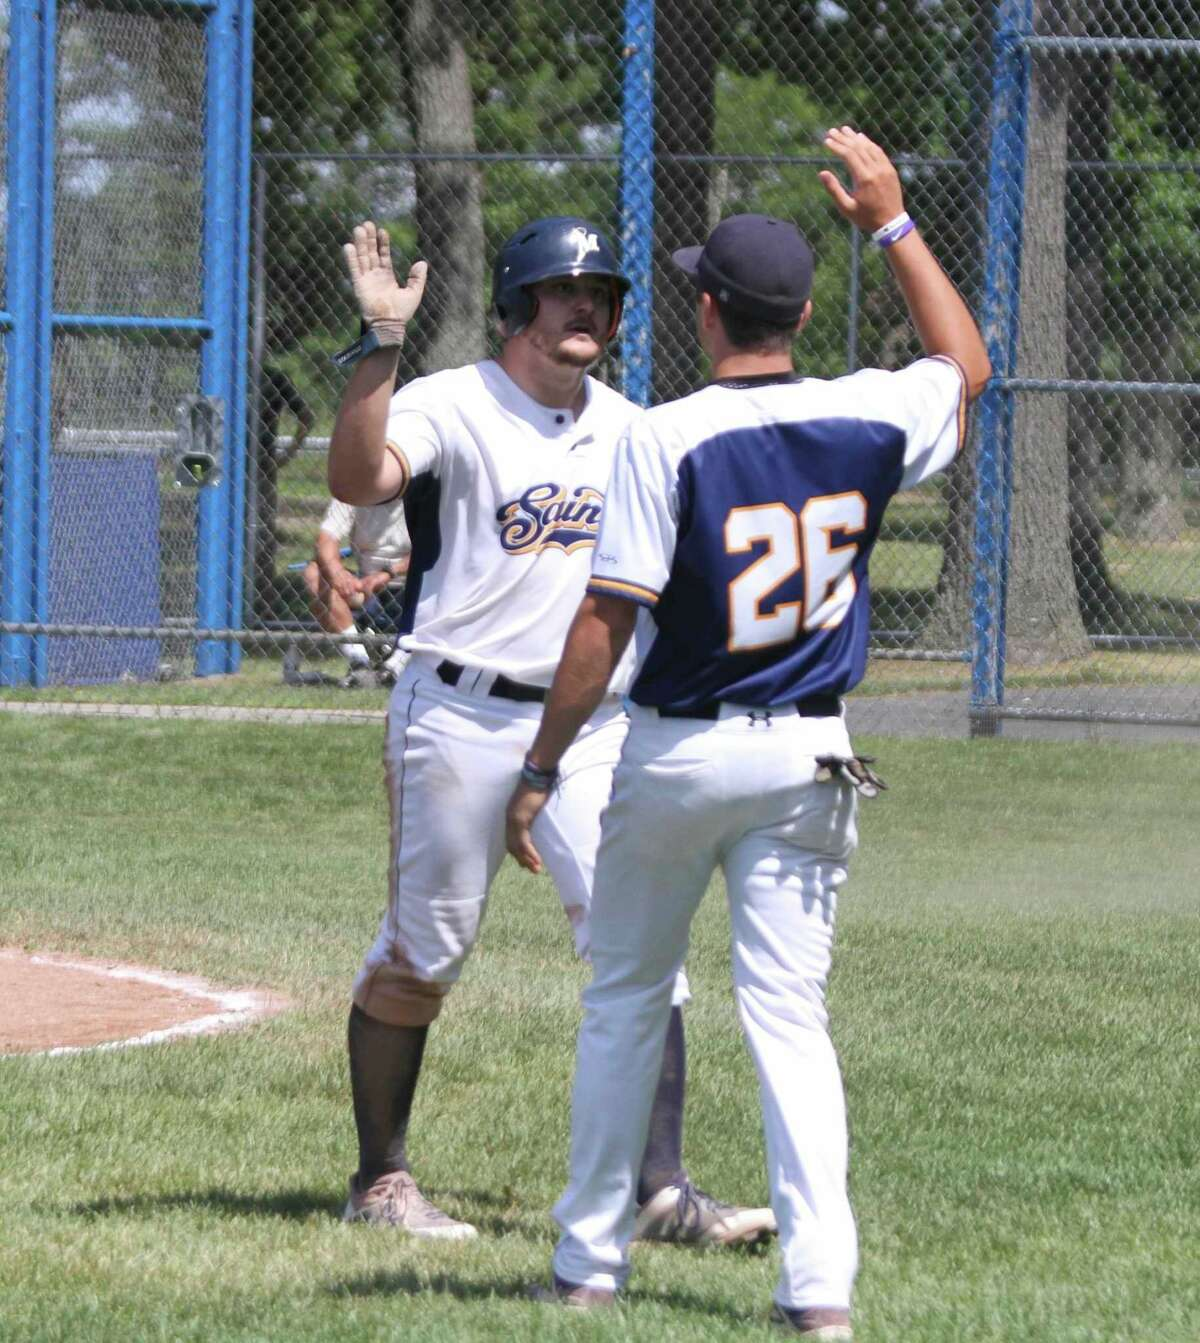 In this file photo, Manistee Saints outfielder Lucas Richardson celebrates a run scored during a game at Rietz Park in Manistee. (File photo)